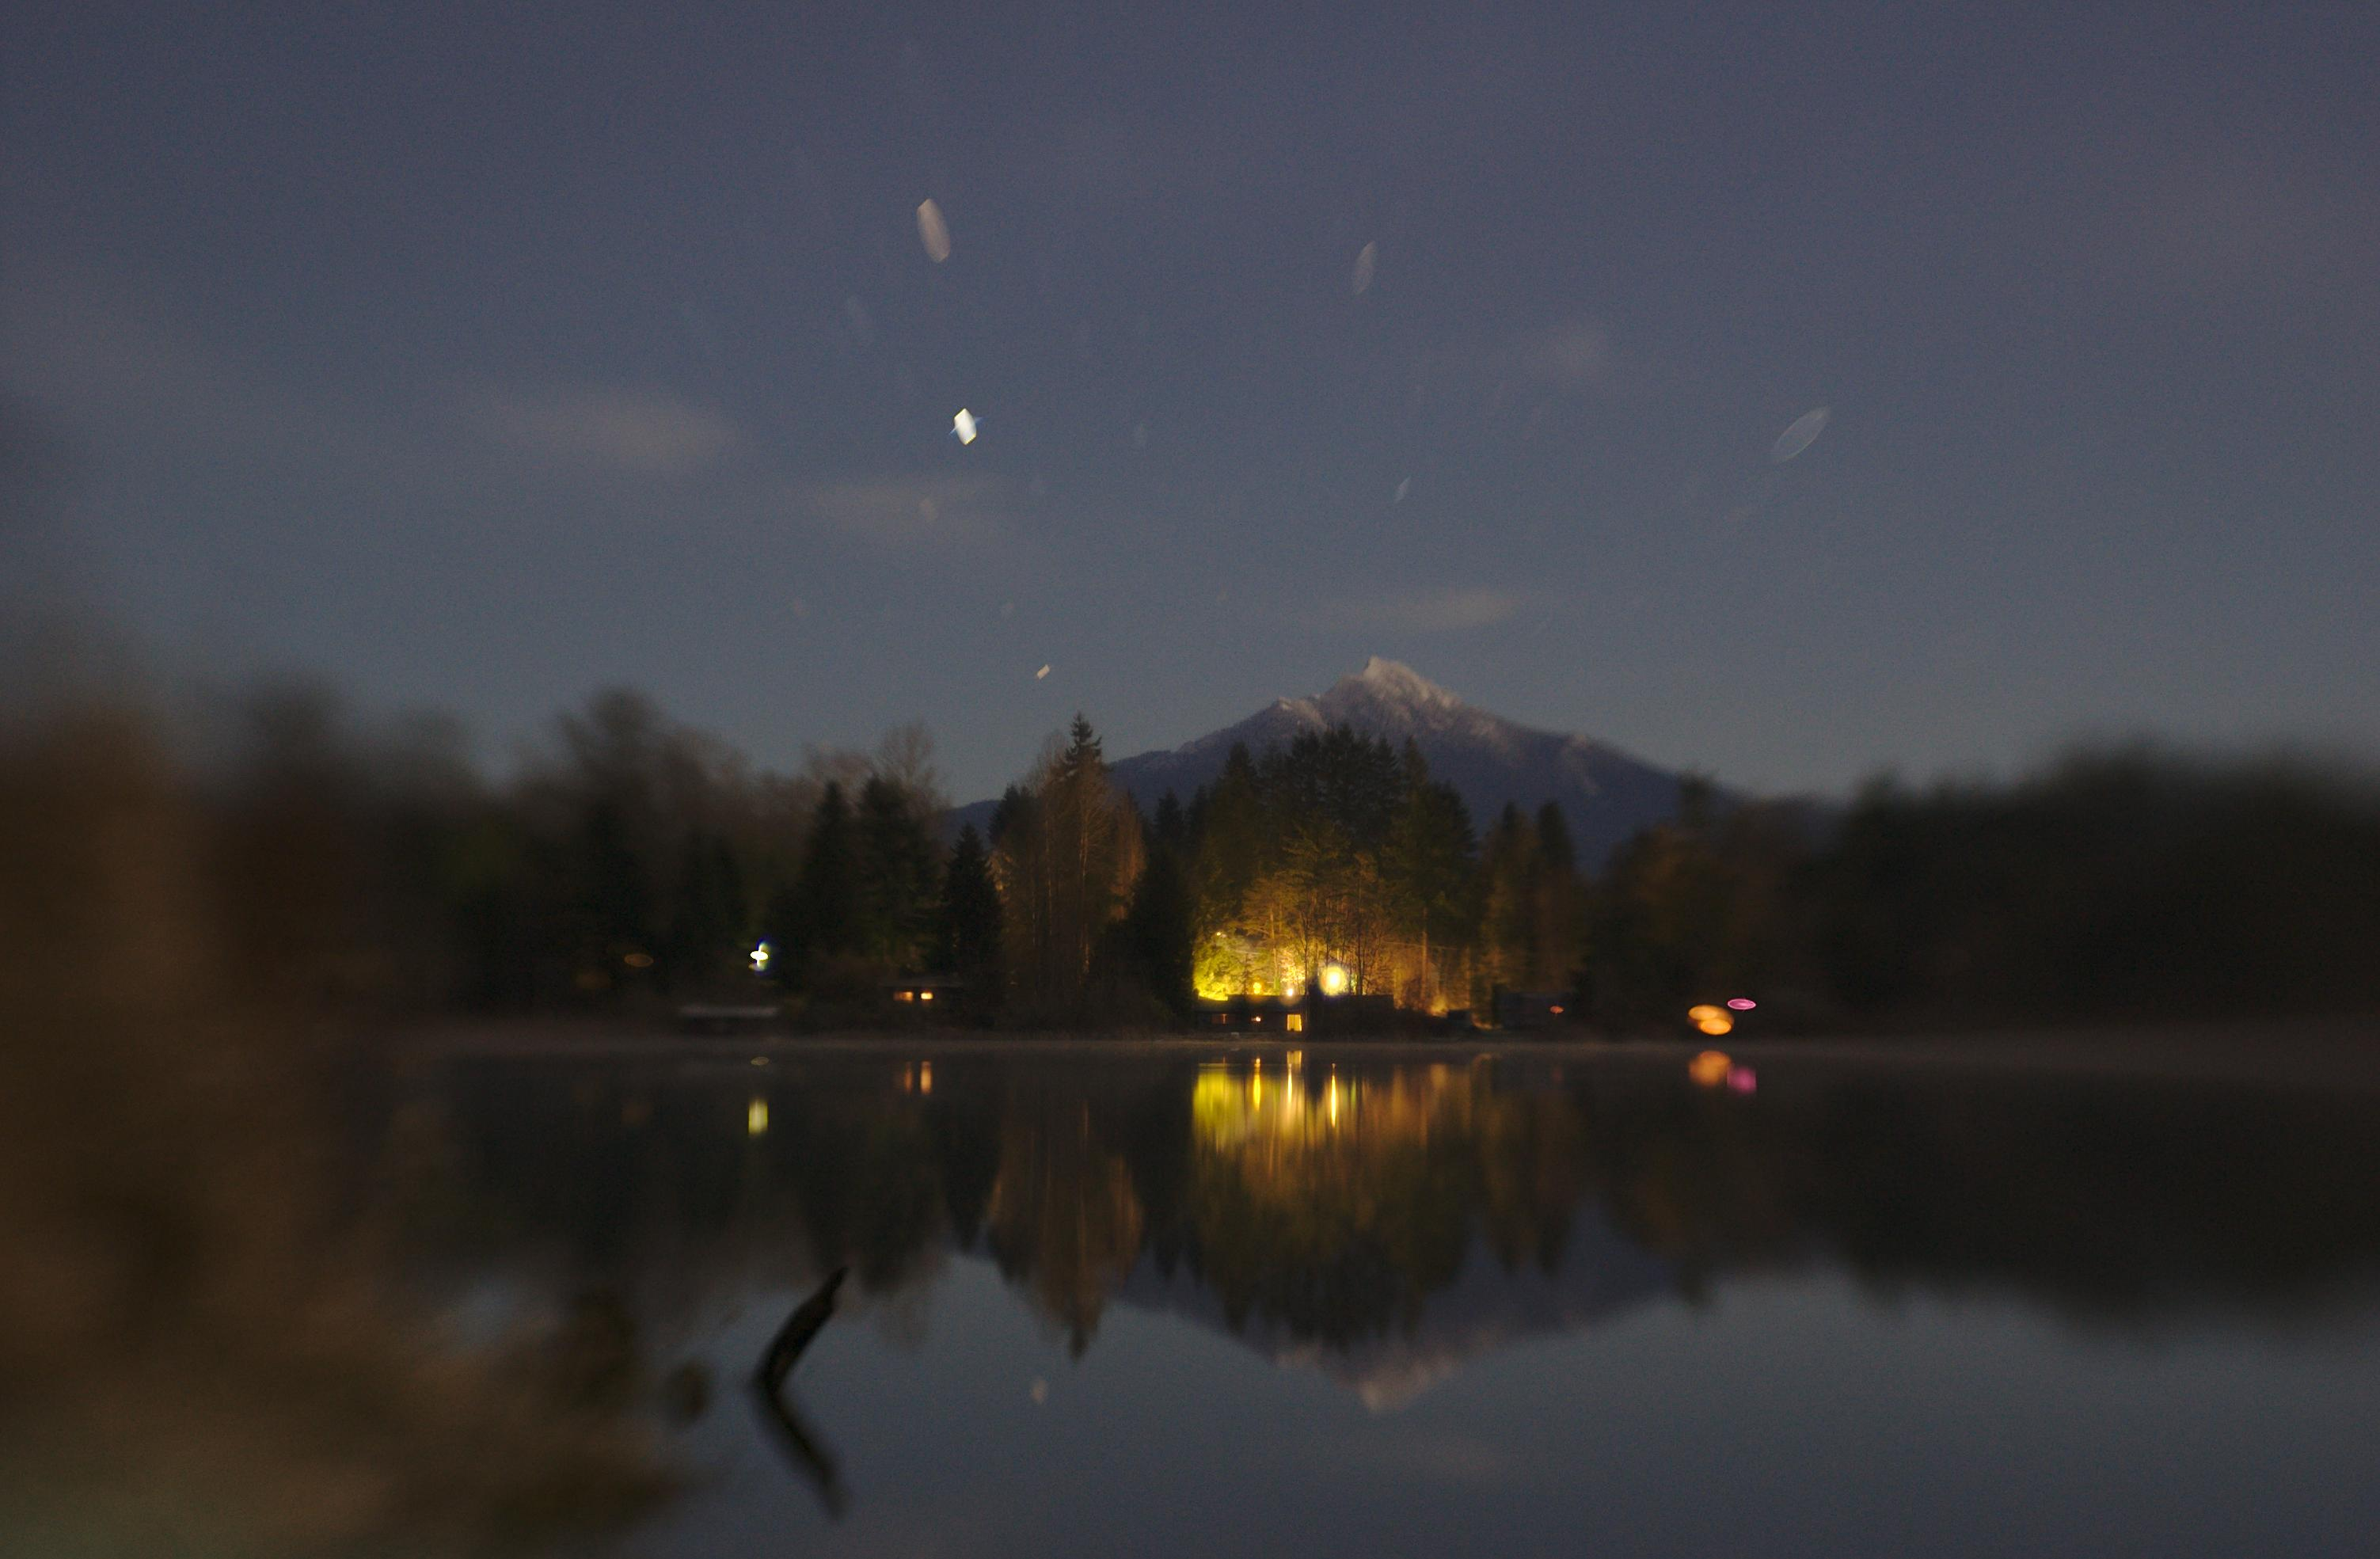 Night photography camping stars mountain lake reflection Lensbaby featured photos